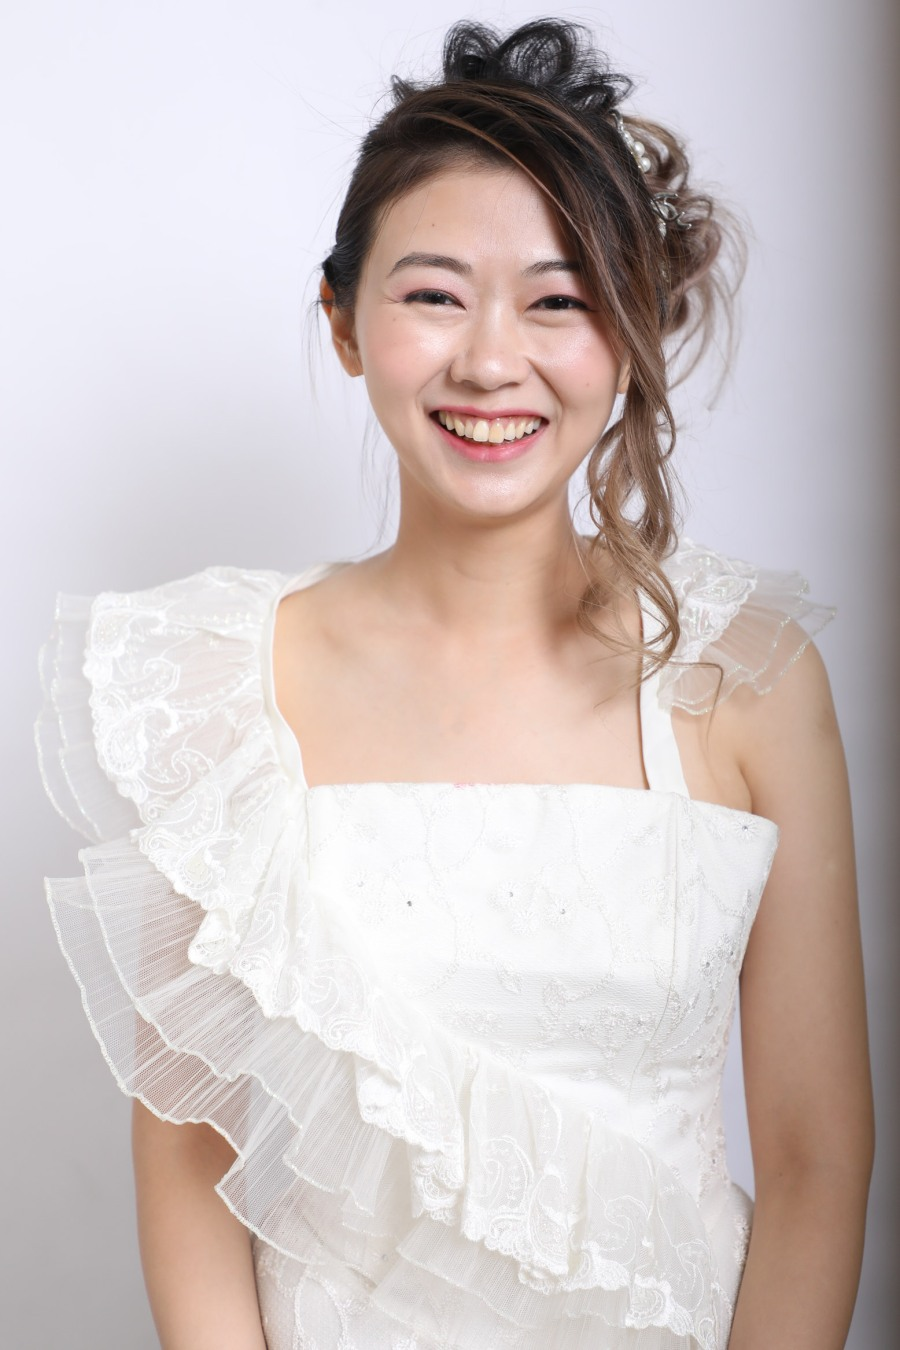 新娘化妝髮型_wedding_bridal_makeup_hairstyling_paulstylist_studio_shooting_photography_carrie-10